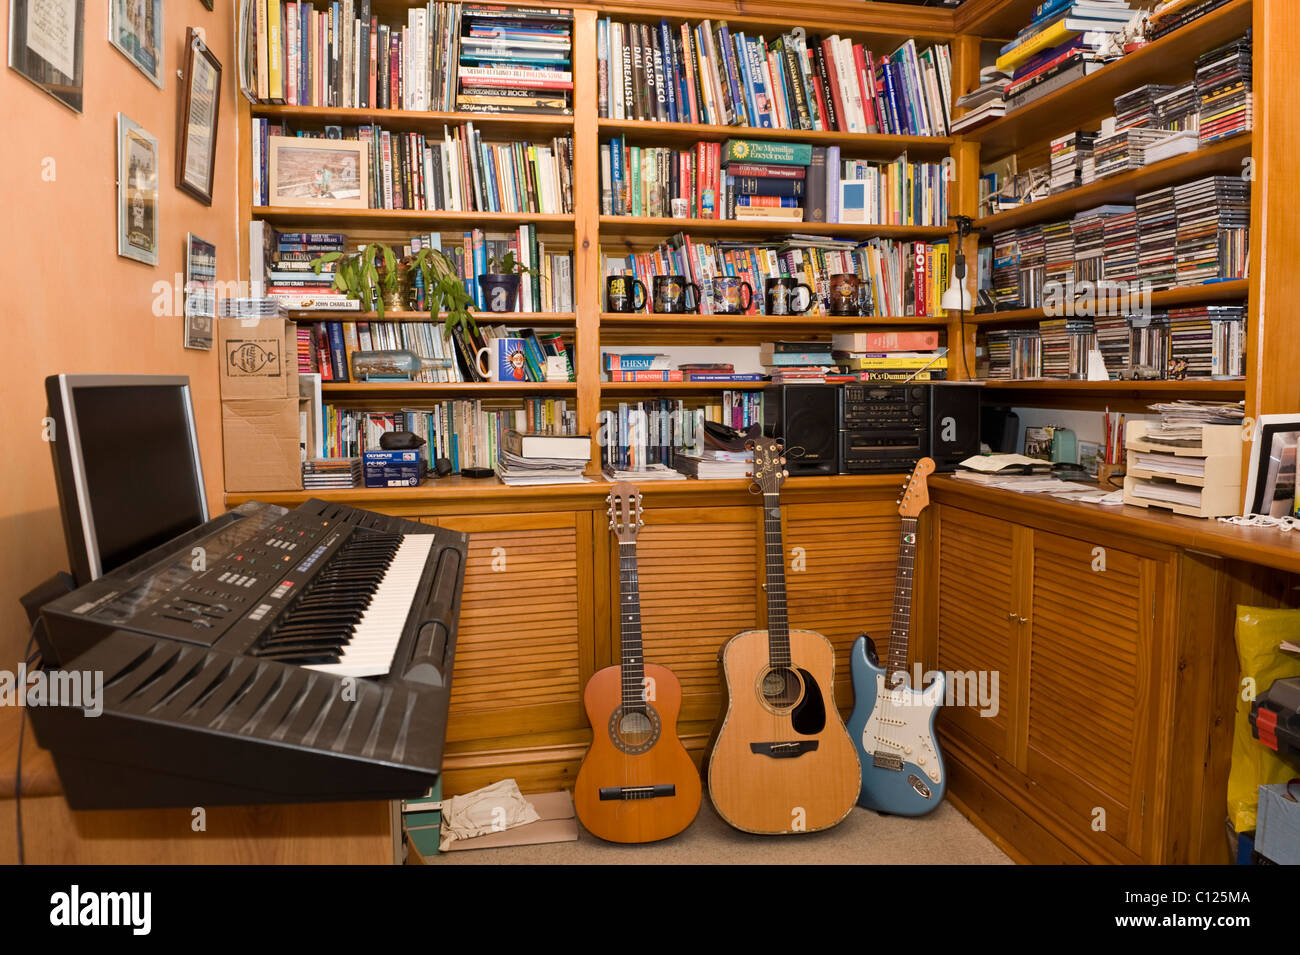 Study and music room with electric piano guitars and bookshelves in UK house - Stock Image